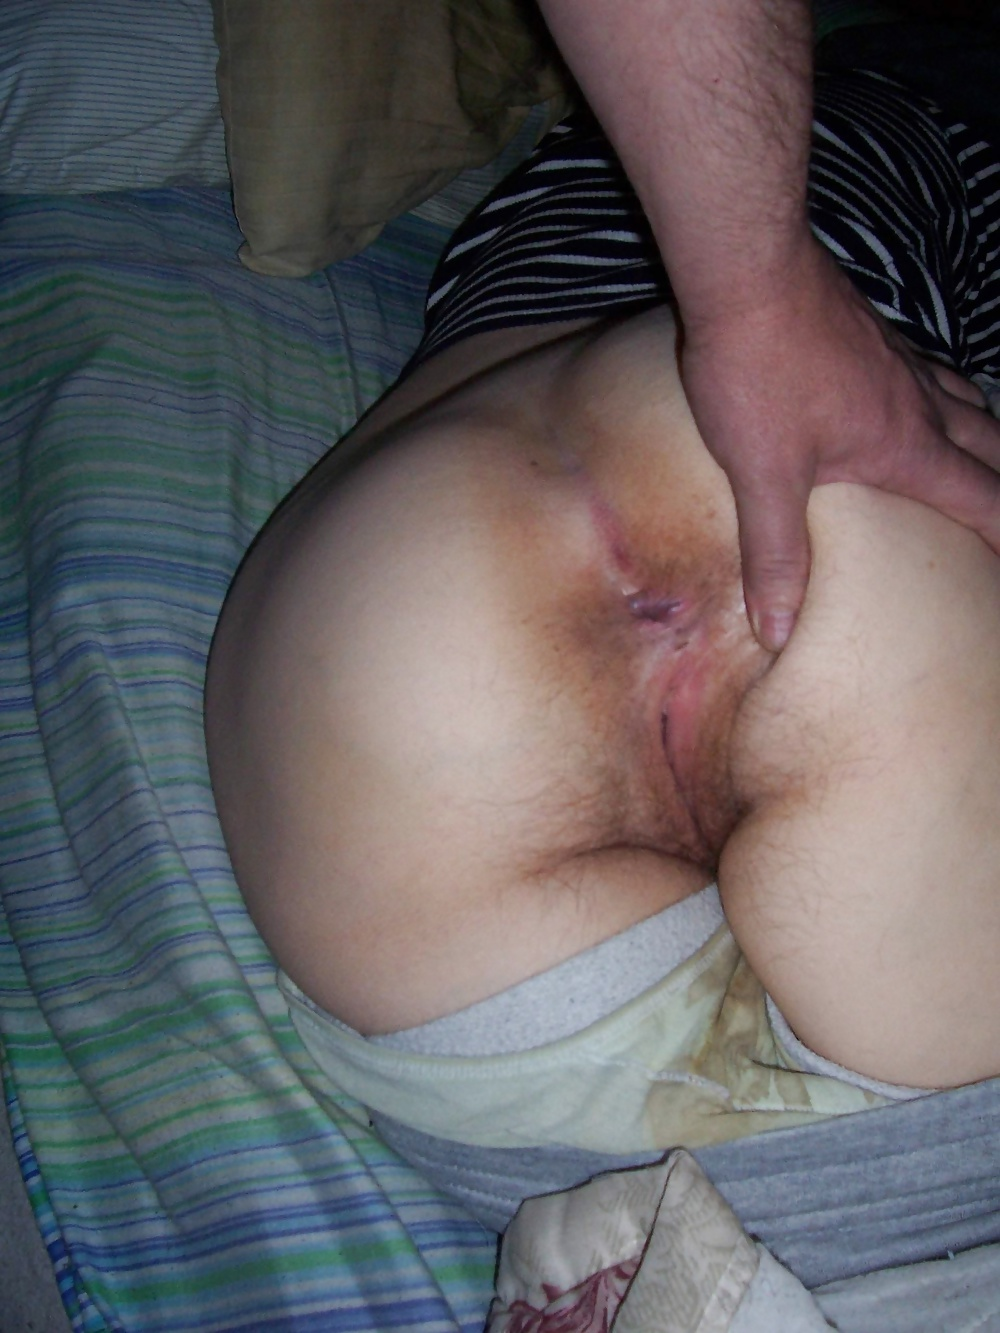 Sleeping girl gets a surprise inside her moist pussyhole